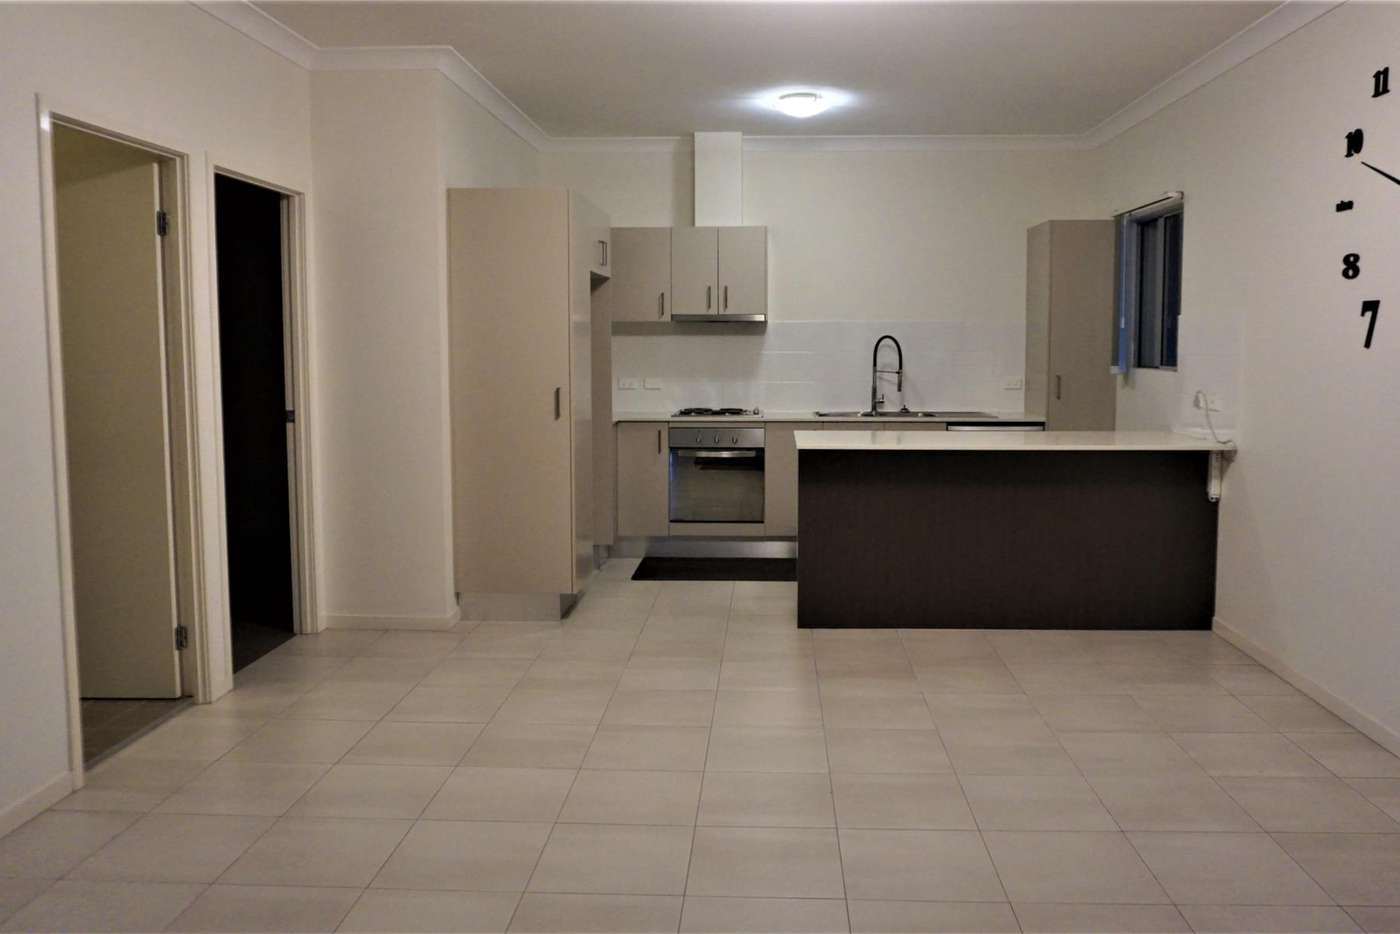 Main view of Homely apartment listing, 4/106 Gillies Street, Zillmere QLD 4034